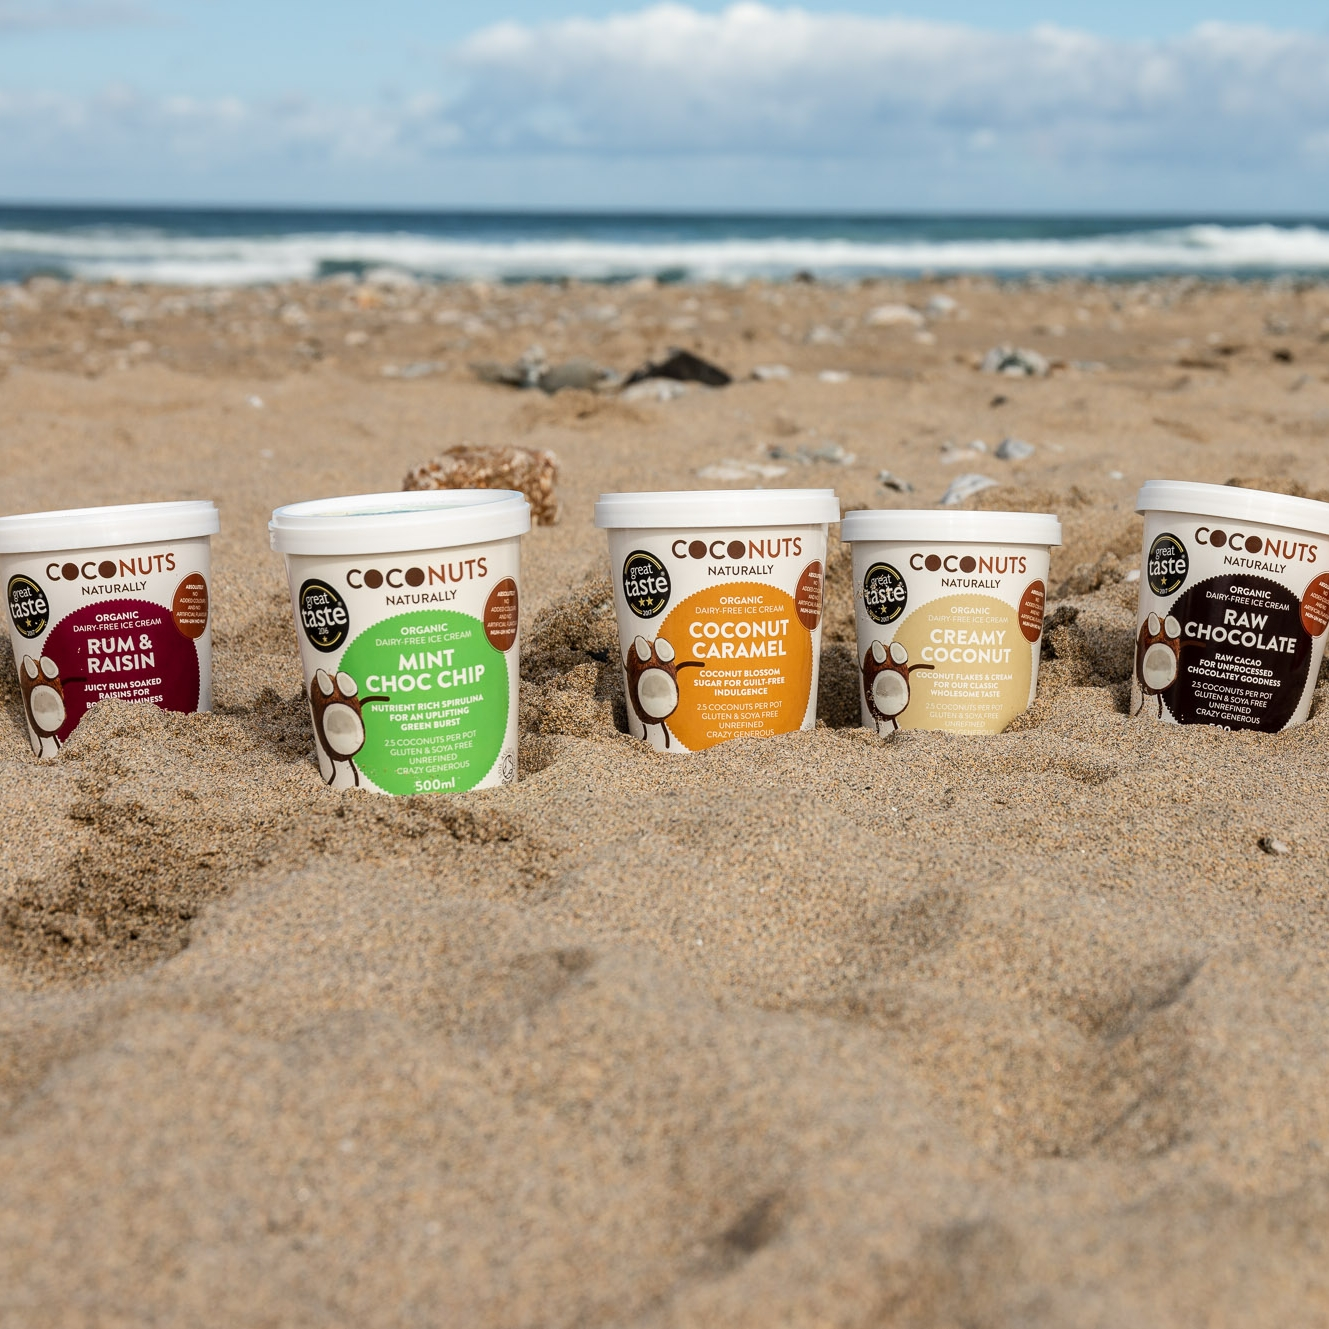 coconuts-icecream-cornwall-naturally-organic-vegan.jpg